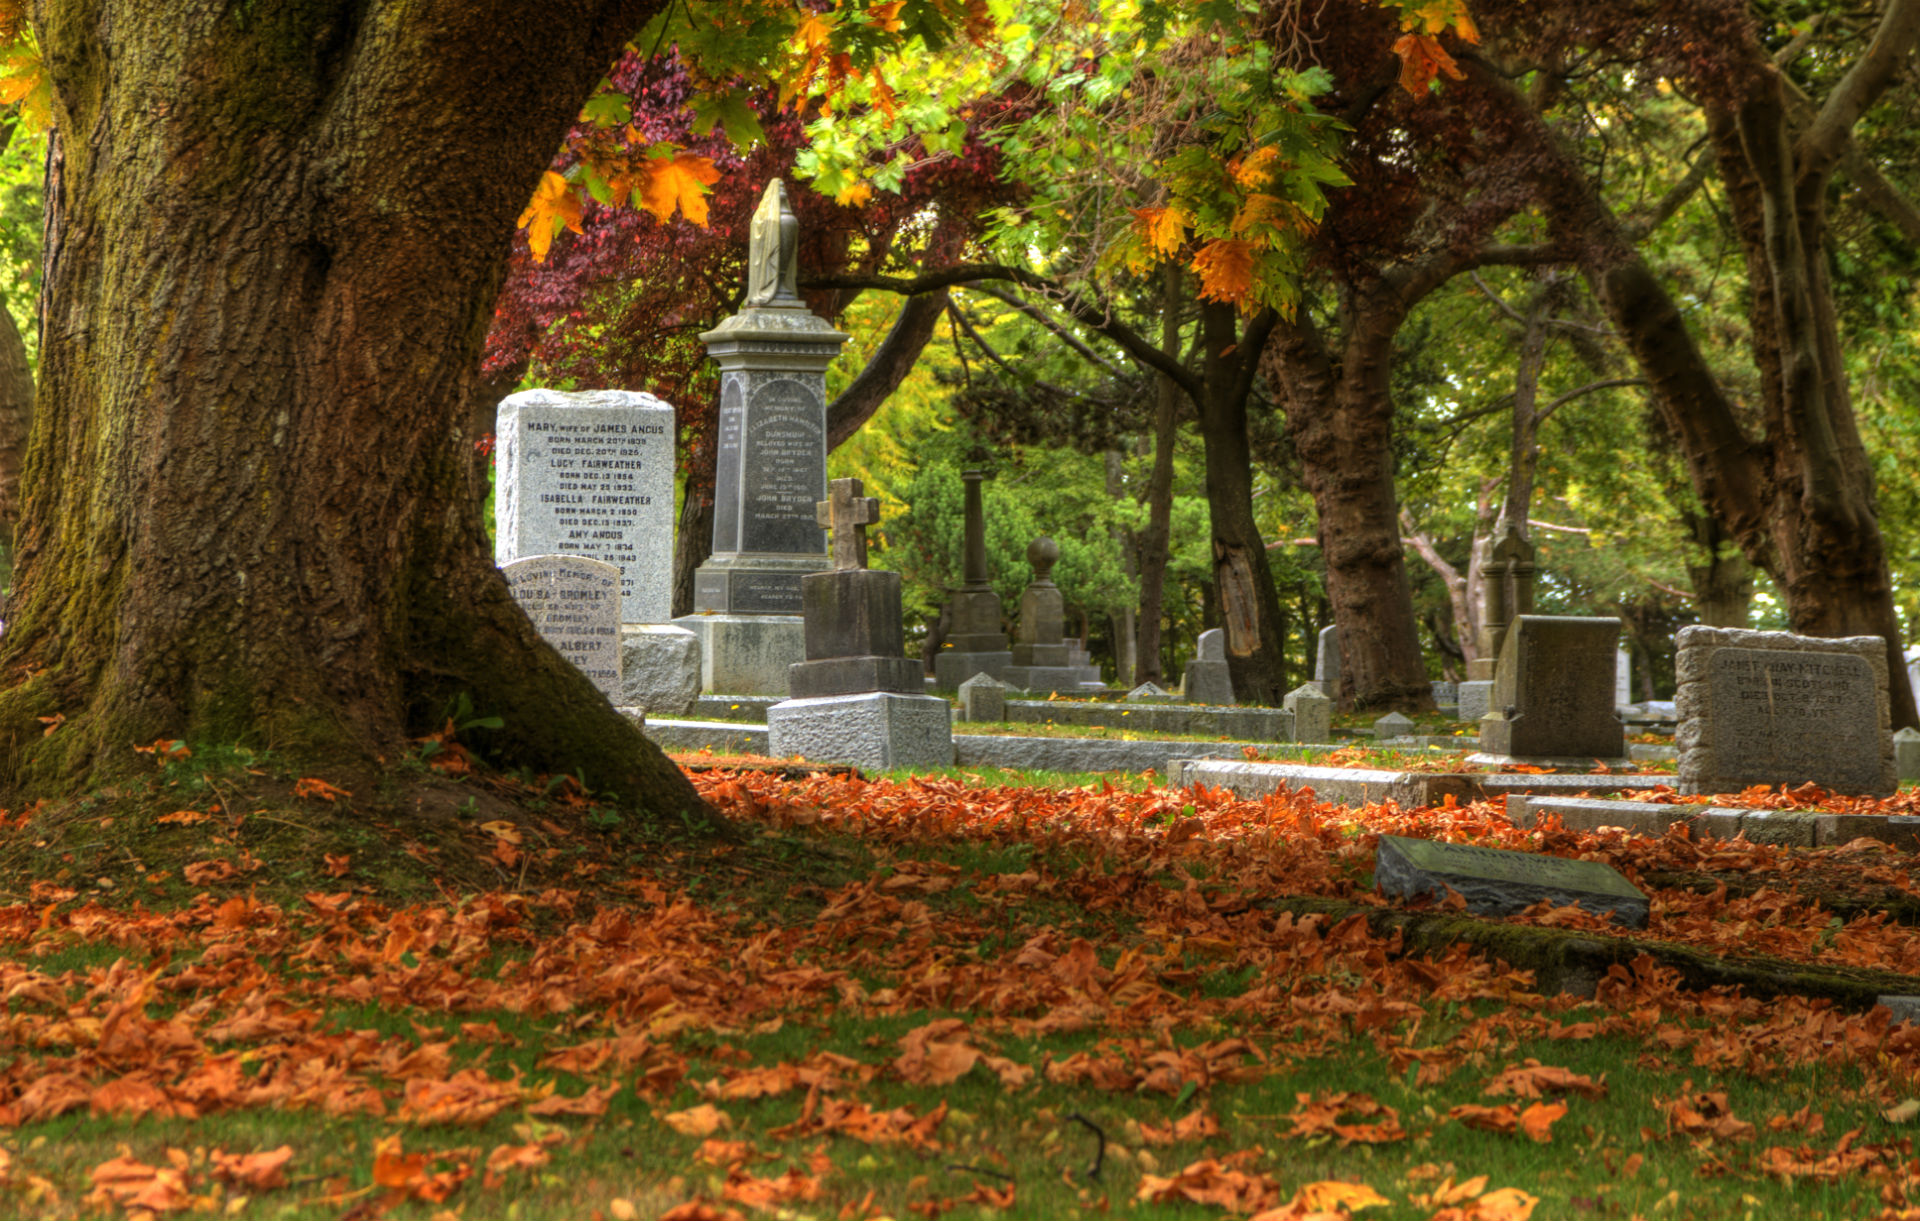 Cemetery grave headstone gothic trees leaves autumn fall wallpaper 1920x1221